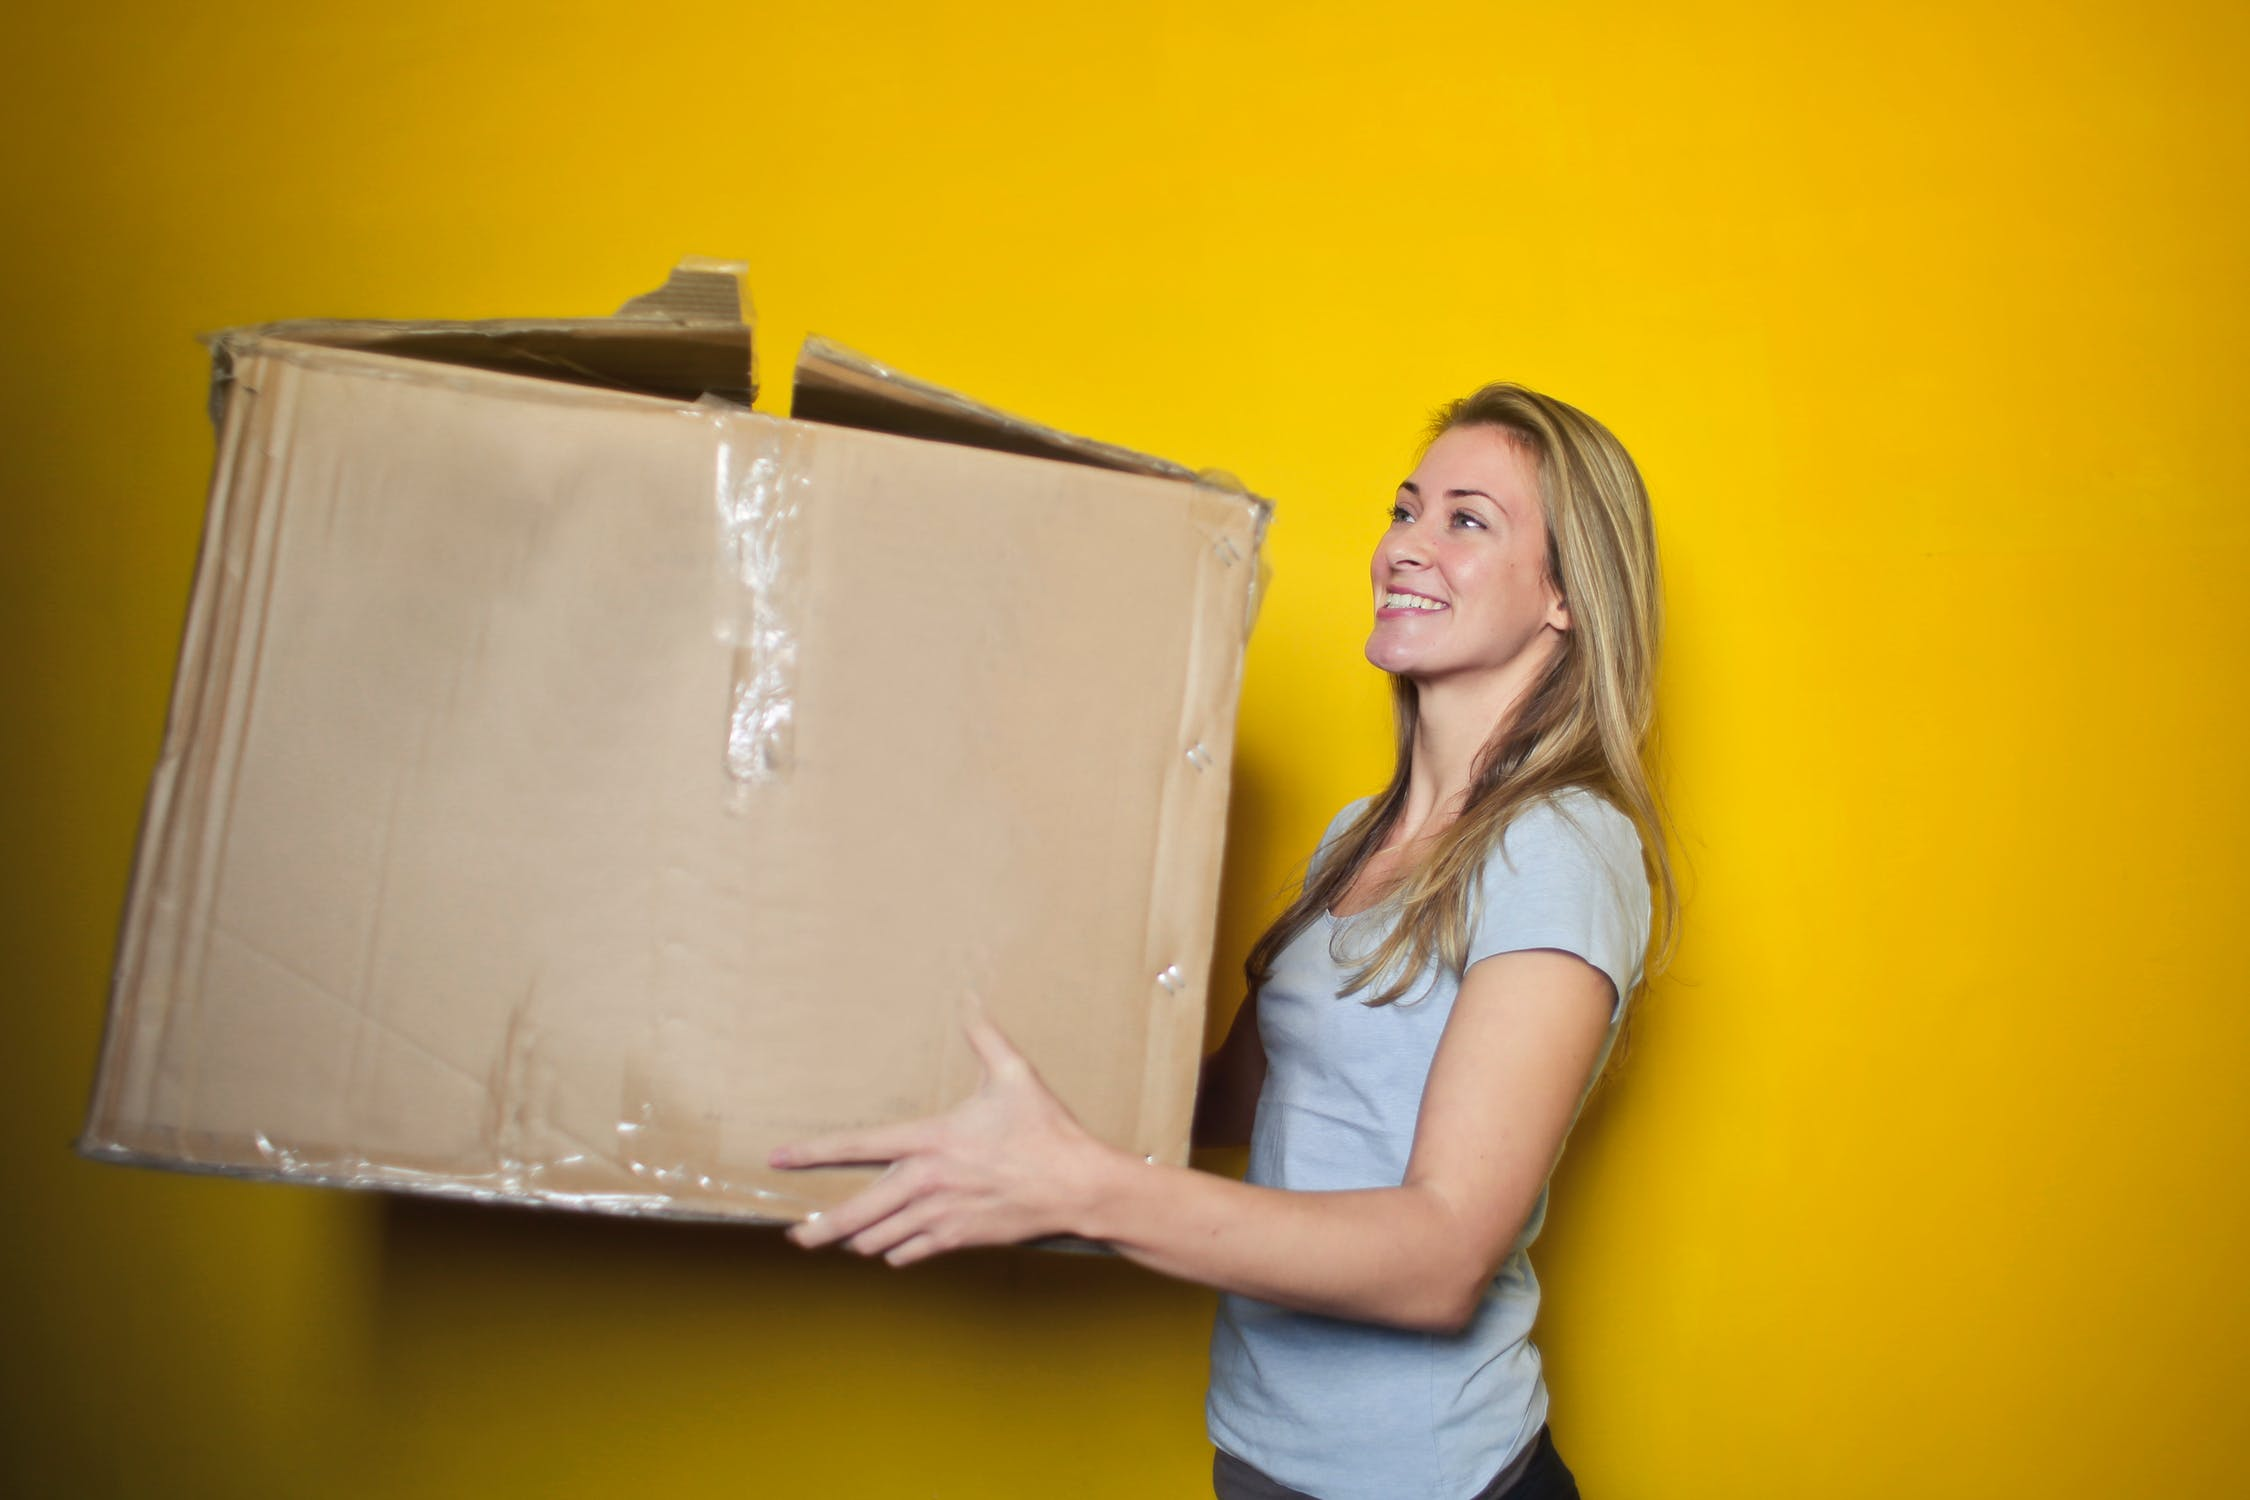 Professional movers vs the DIY method is an eternal relocation struggle